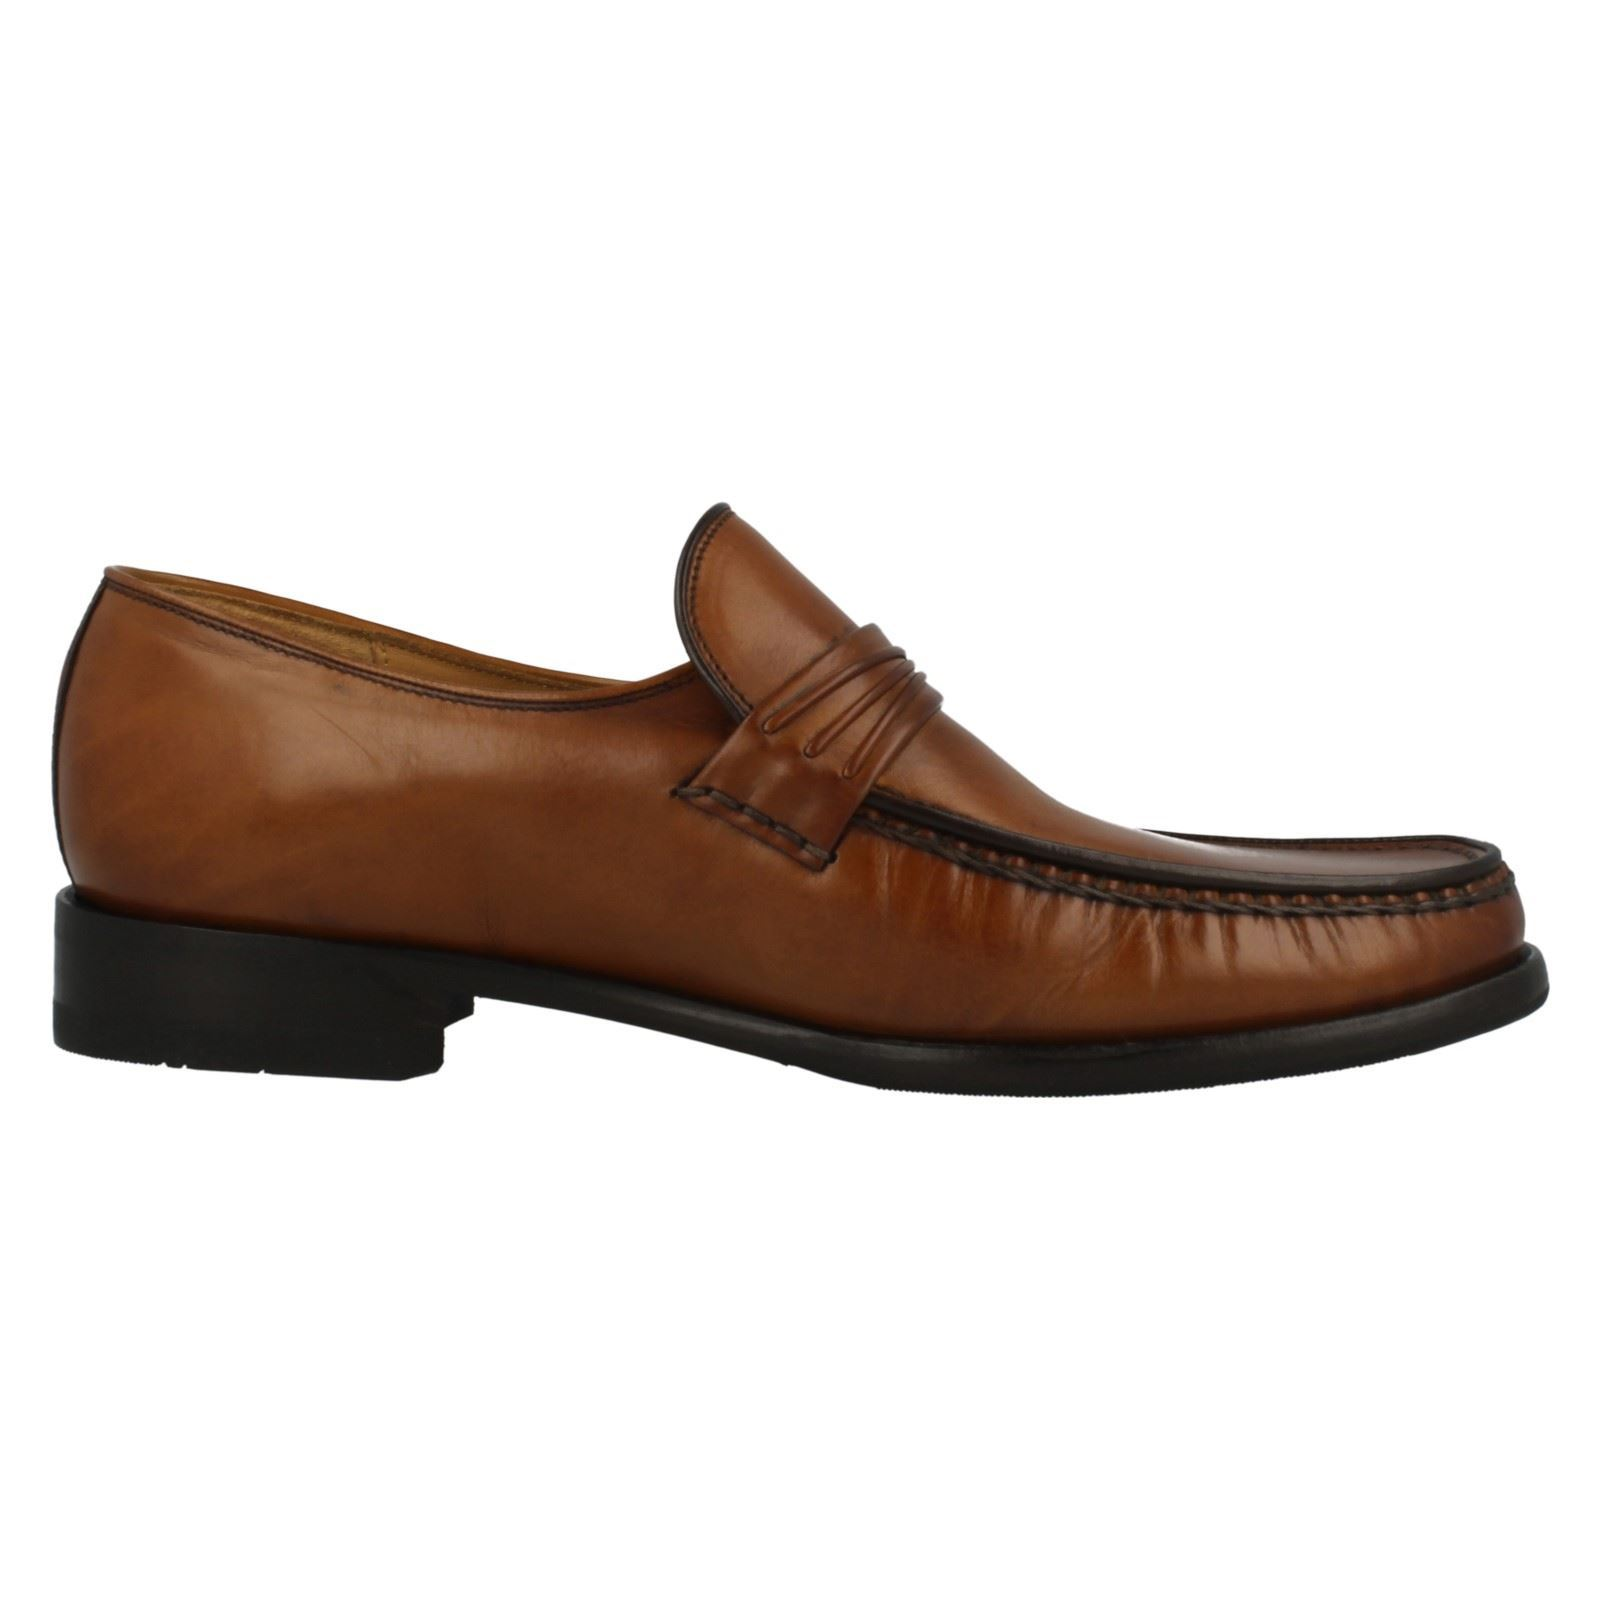 mens loake leather moccasin slip on shoes palermo 2 ebay